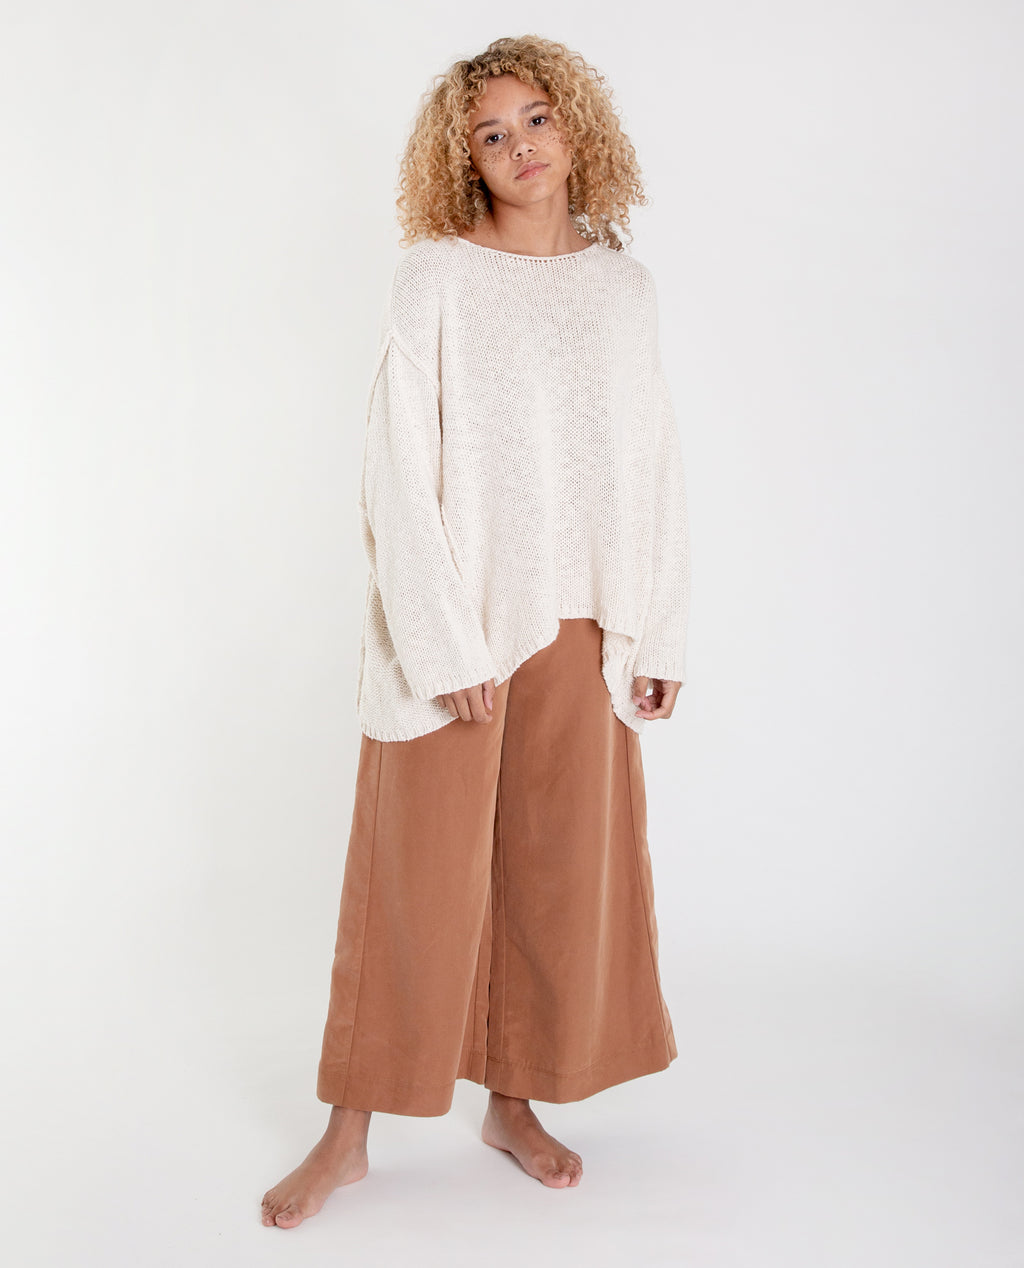 ALESSANDRA Cotton Jumper In Ecru